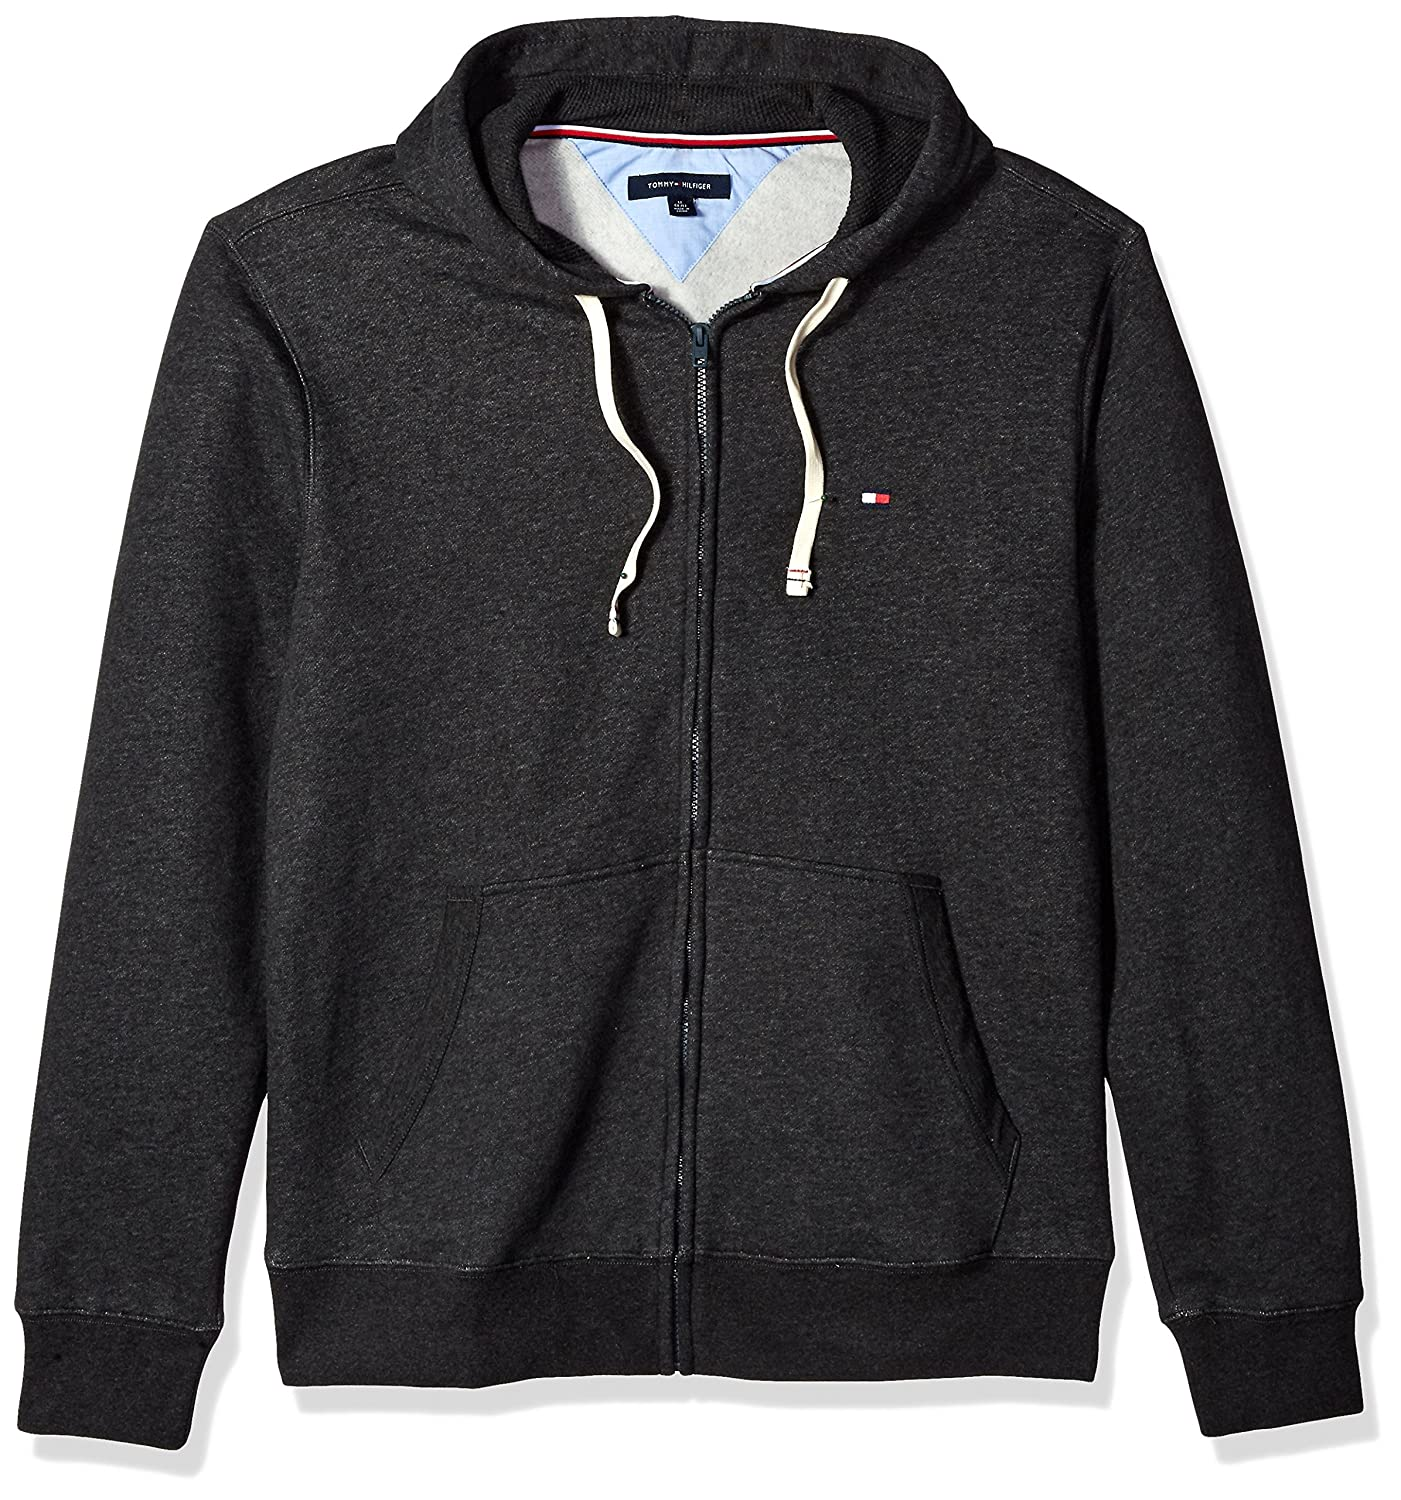 Tommy Hilfiger Men's Big & Tall Zip Up Hoodie 78C4152